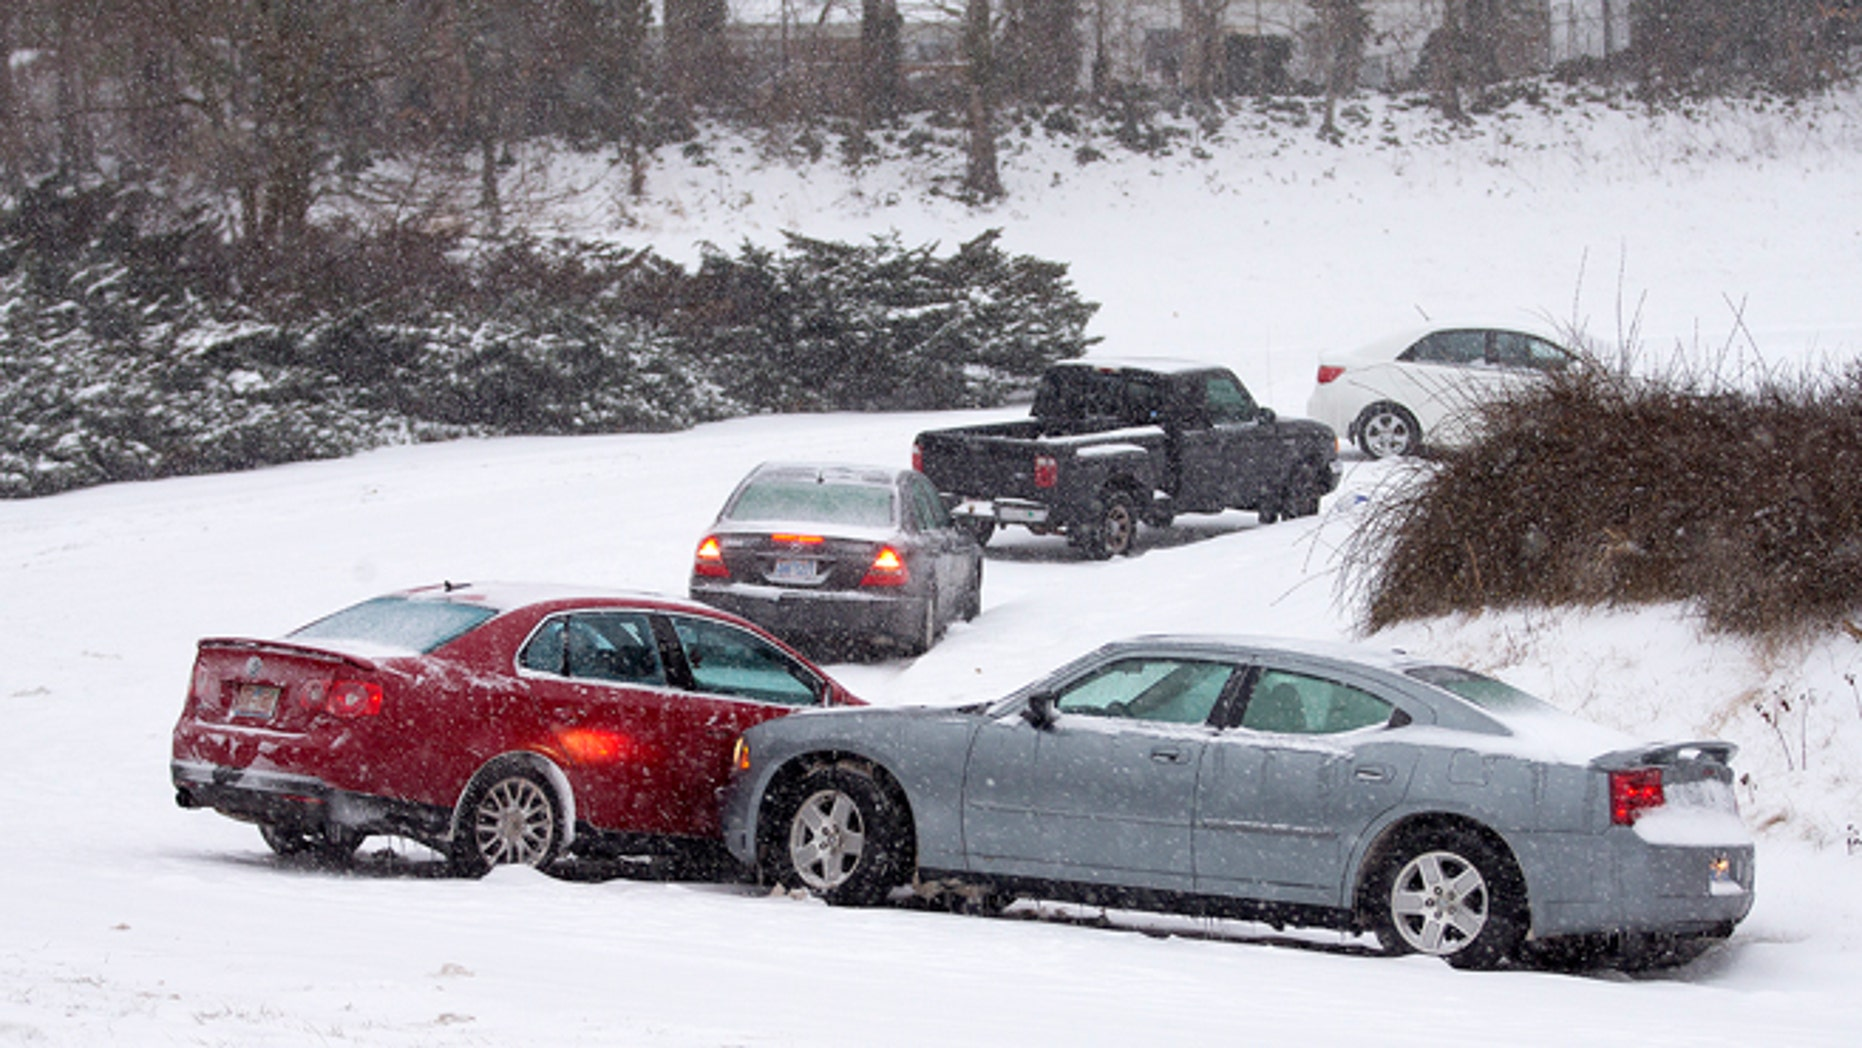 Cars that lost traction sit on the eastbound ramp from Joseph Bryan Boulevard to Holden Road during a snowfall in Greensboro, N.C., Wednesday, Feb. 12, 2014. A major winter slammed into North Carolina Wednesday, turning homebound commutes that typically take minutes into hours-long ordeals as traffic slowed to a slippery slog and threatening to leave many areas dark because of power outages. (AP Photo/News & Record, Nelson Kepley)